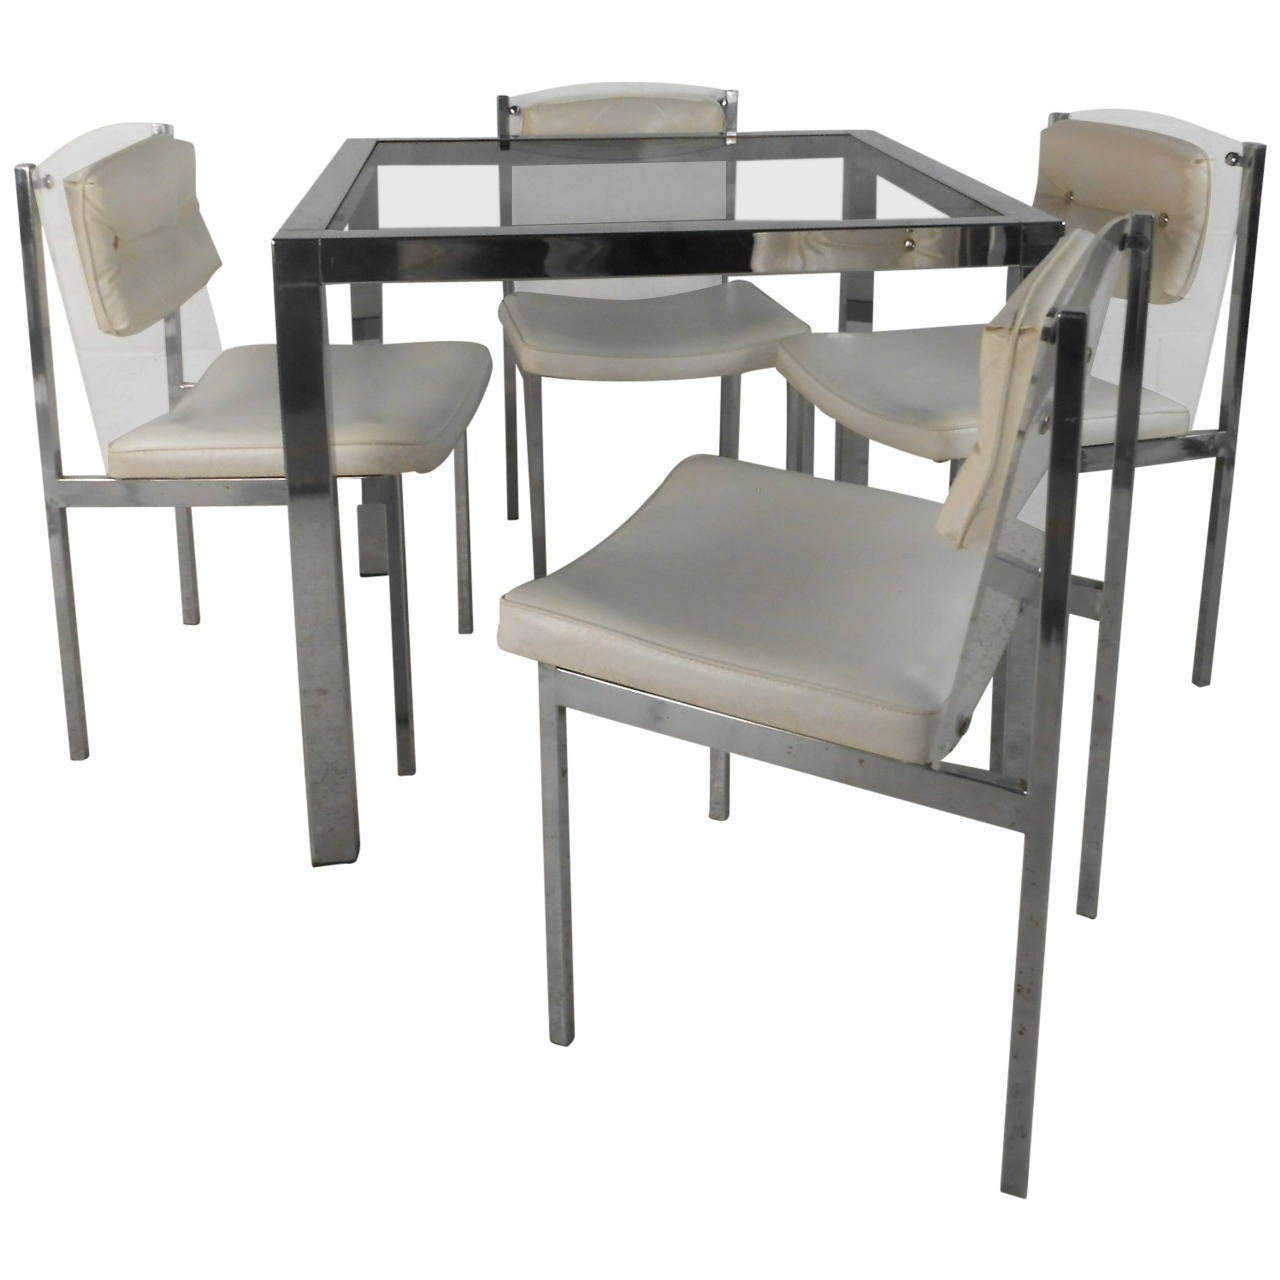 Mid century modern chrome glass and lucite dining set for Modern dining table and chairs